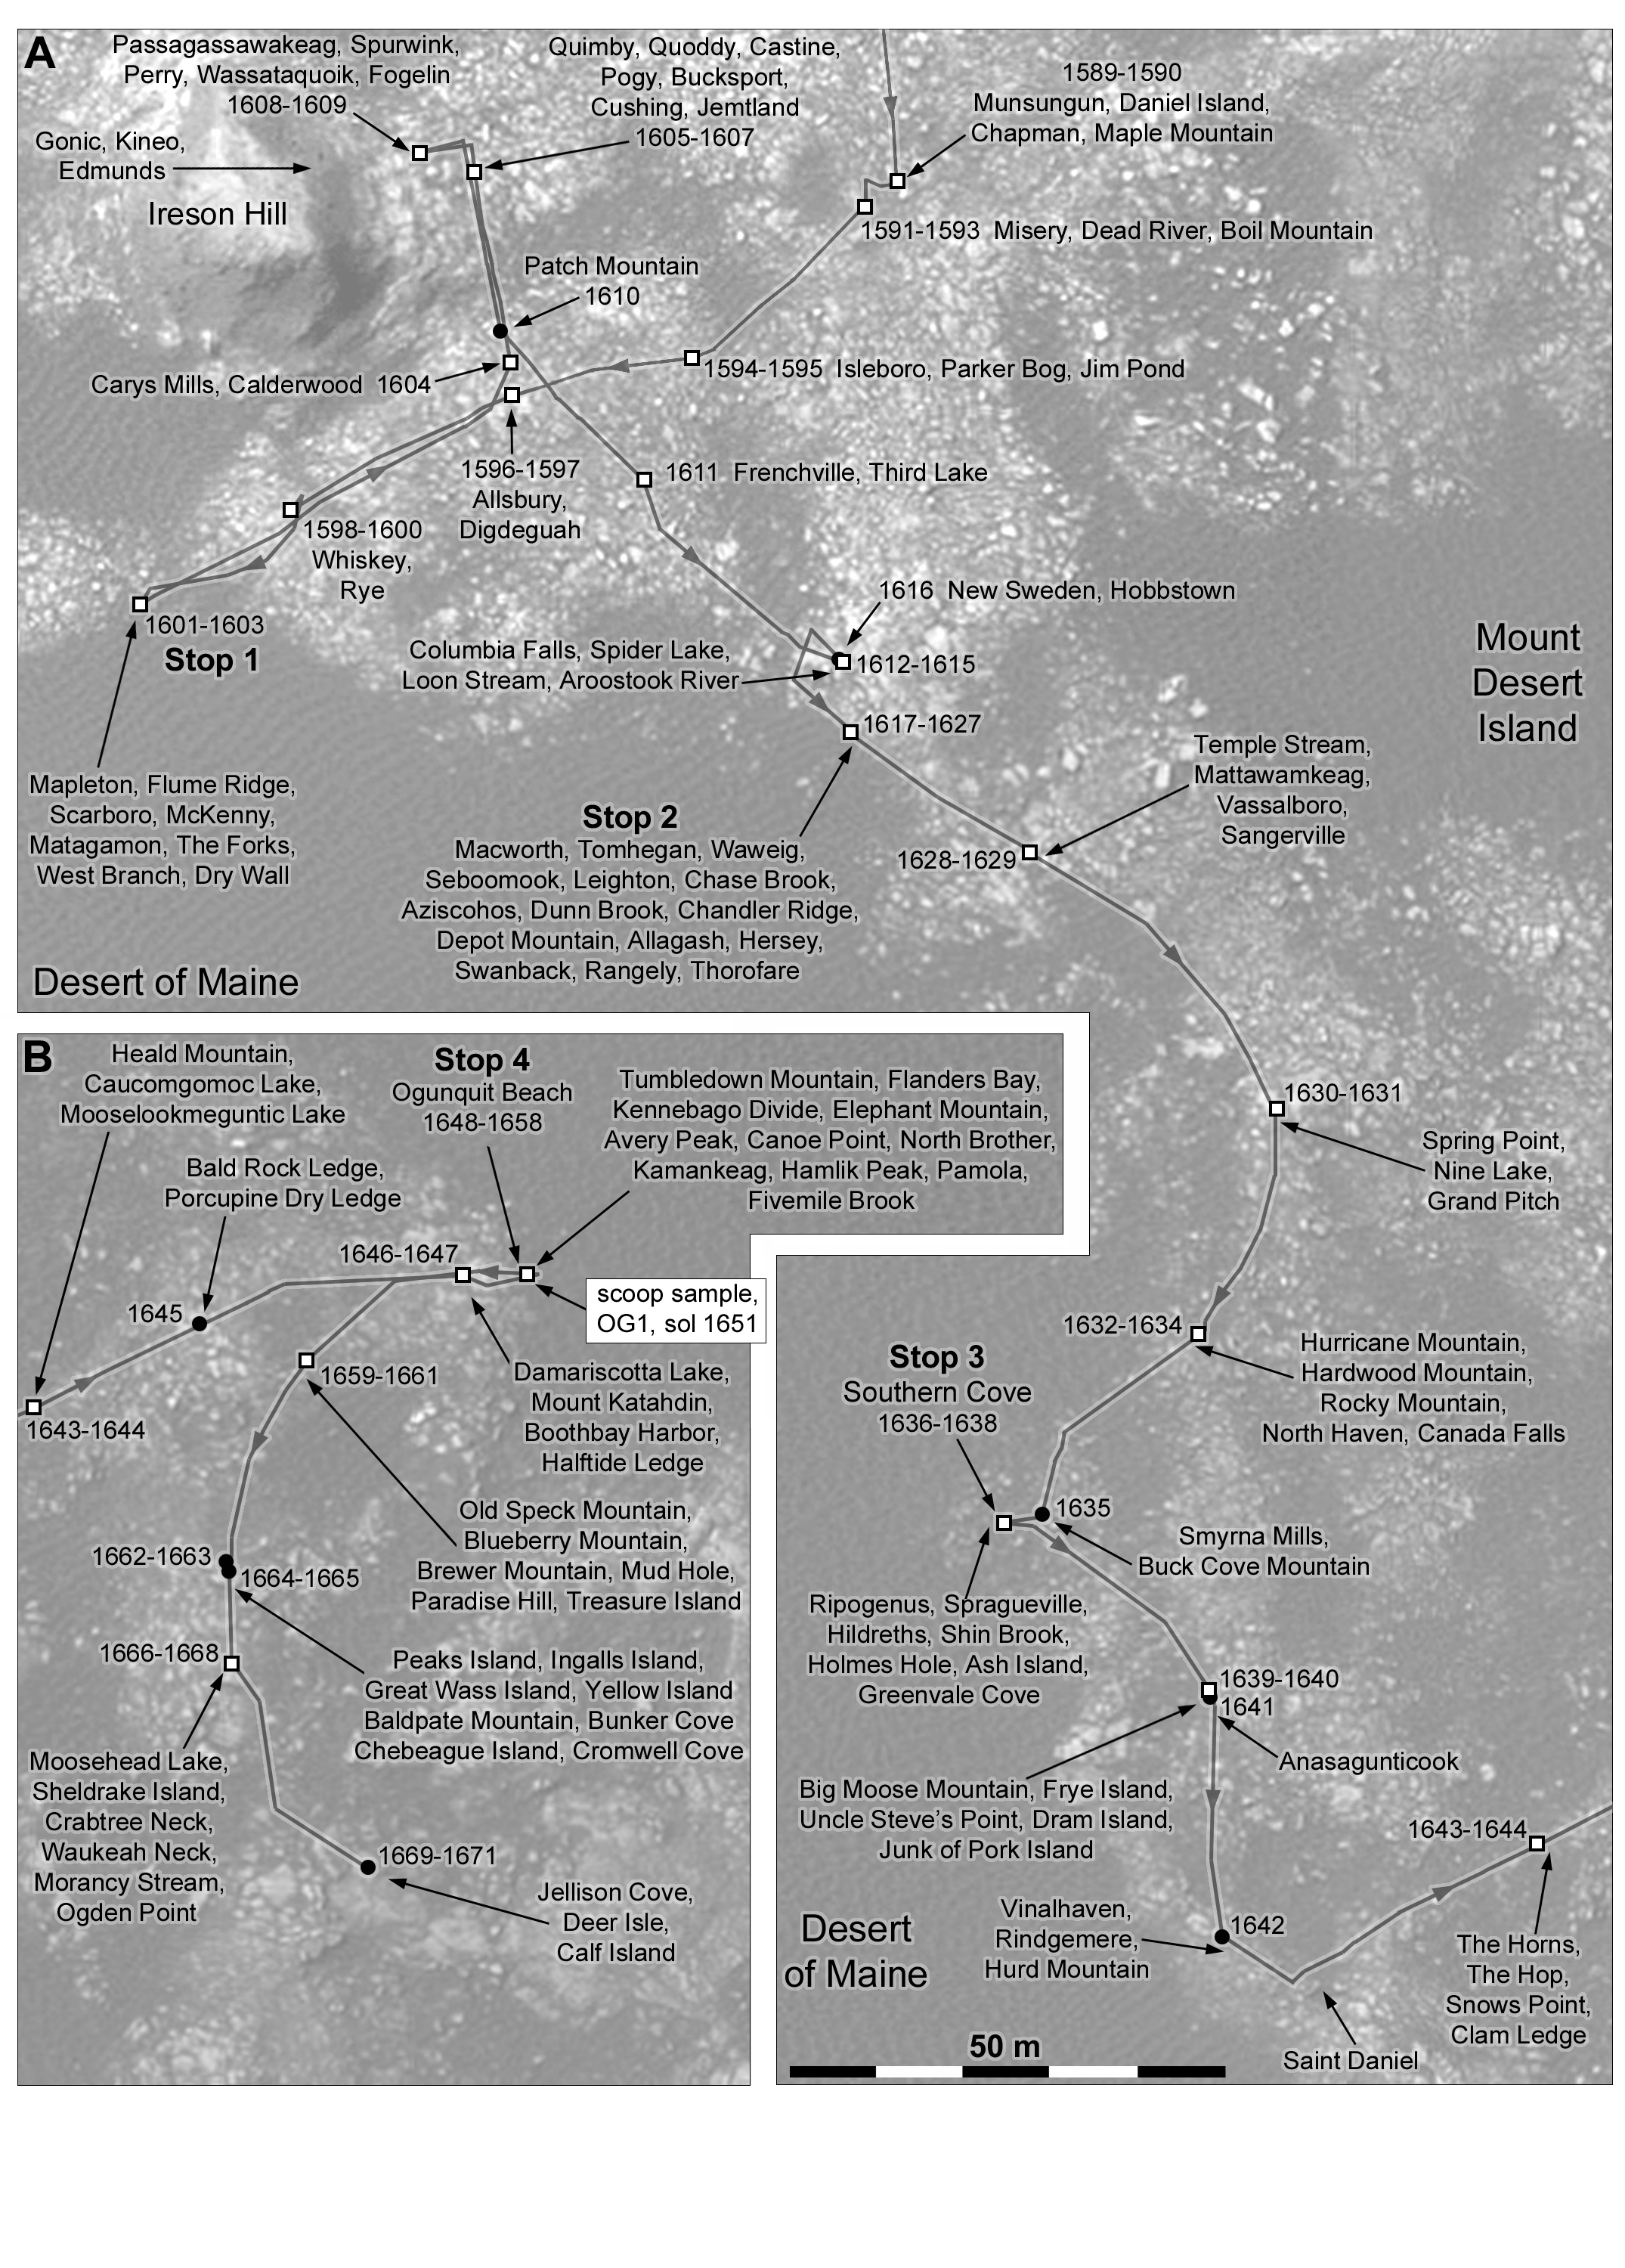 Curiosity Update Sols 1548 1599 Serious Drill Brake Problem As Rover Brakes Diagram Phil Stookes Route Map 38 Ireson Hill Ogunquit Beach And Southern Bagnold